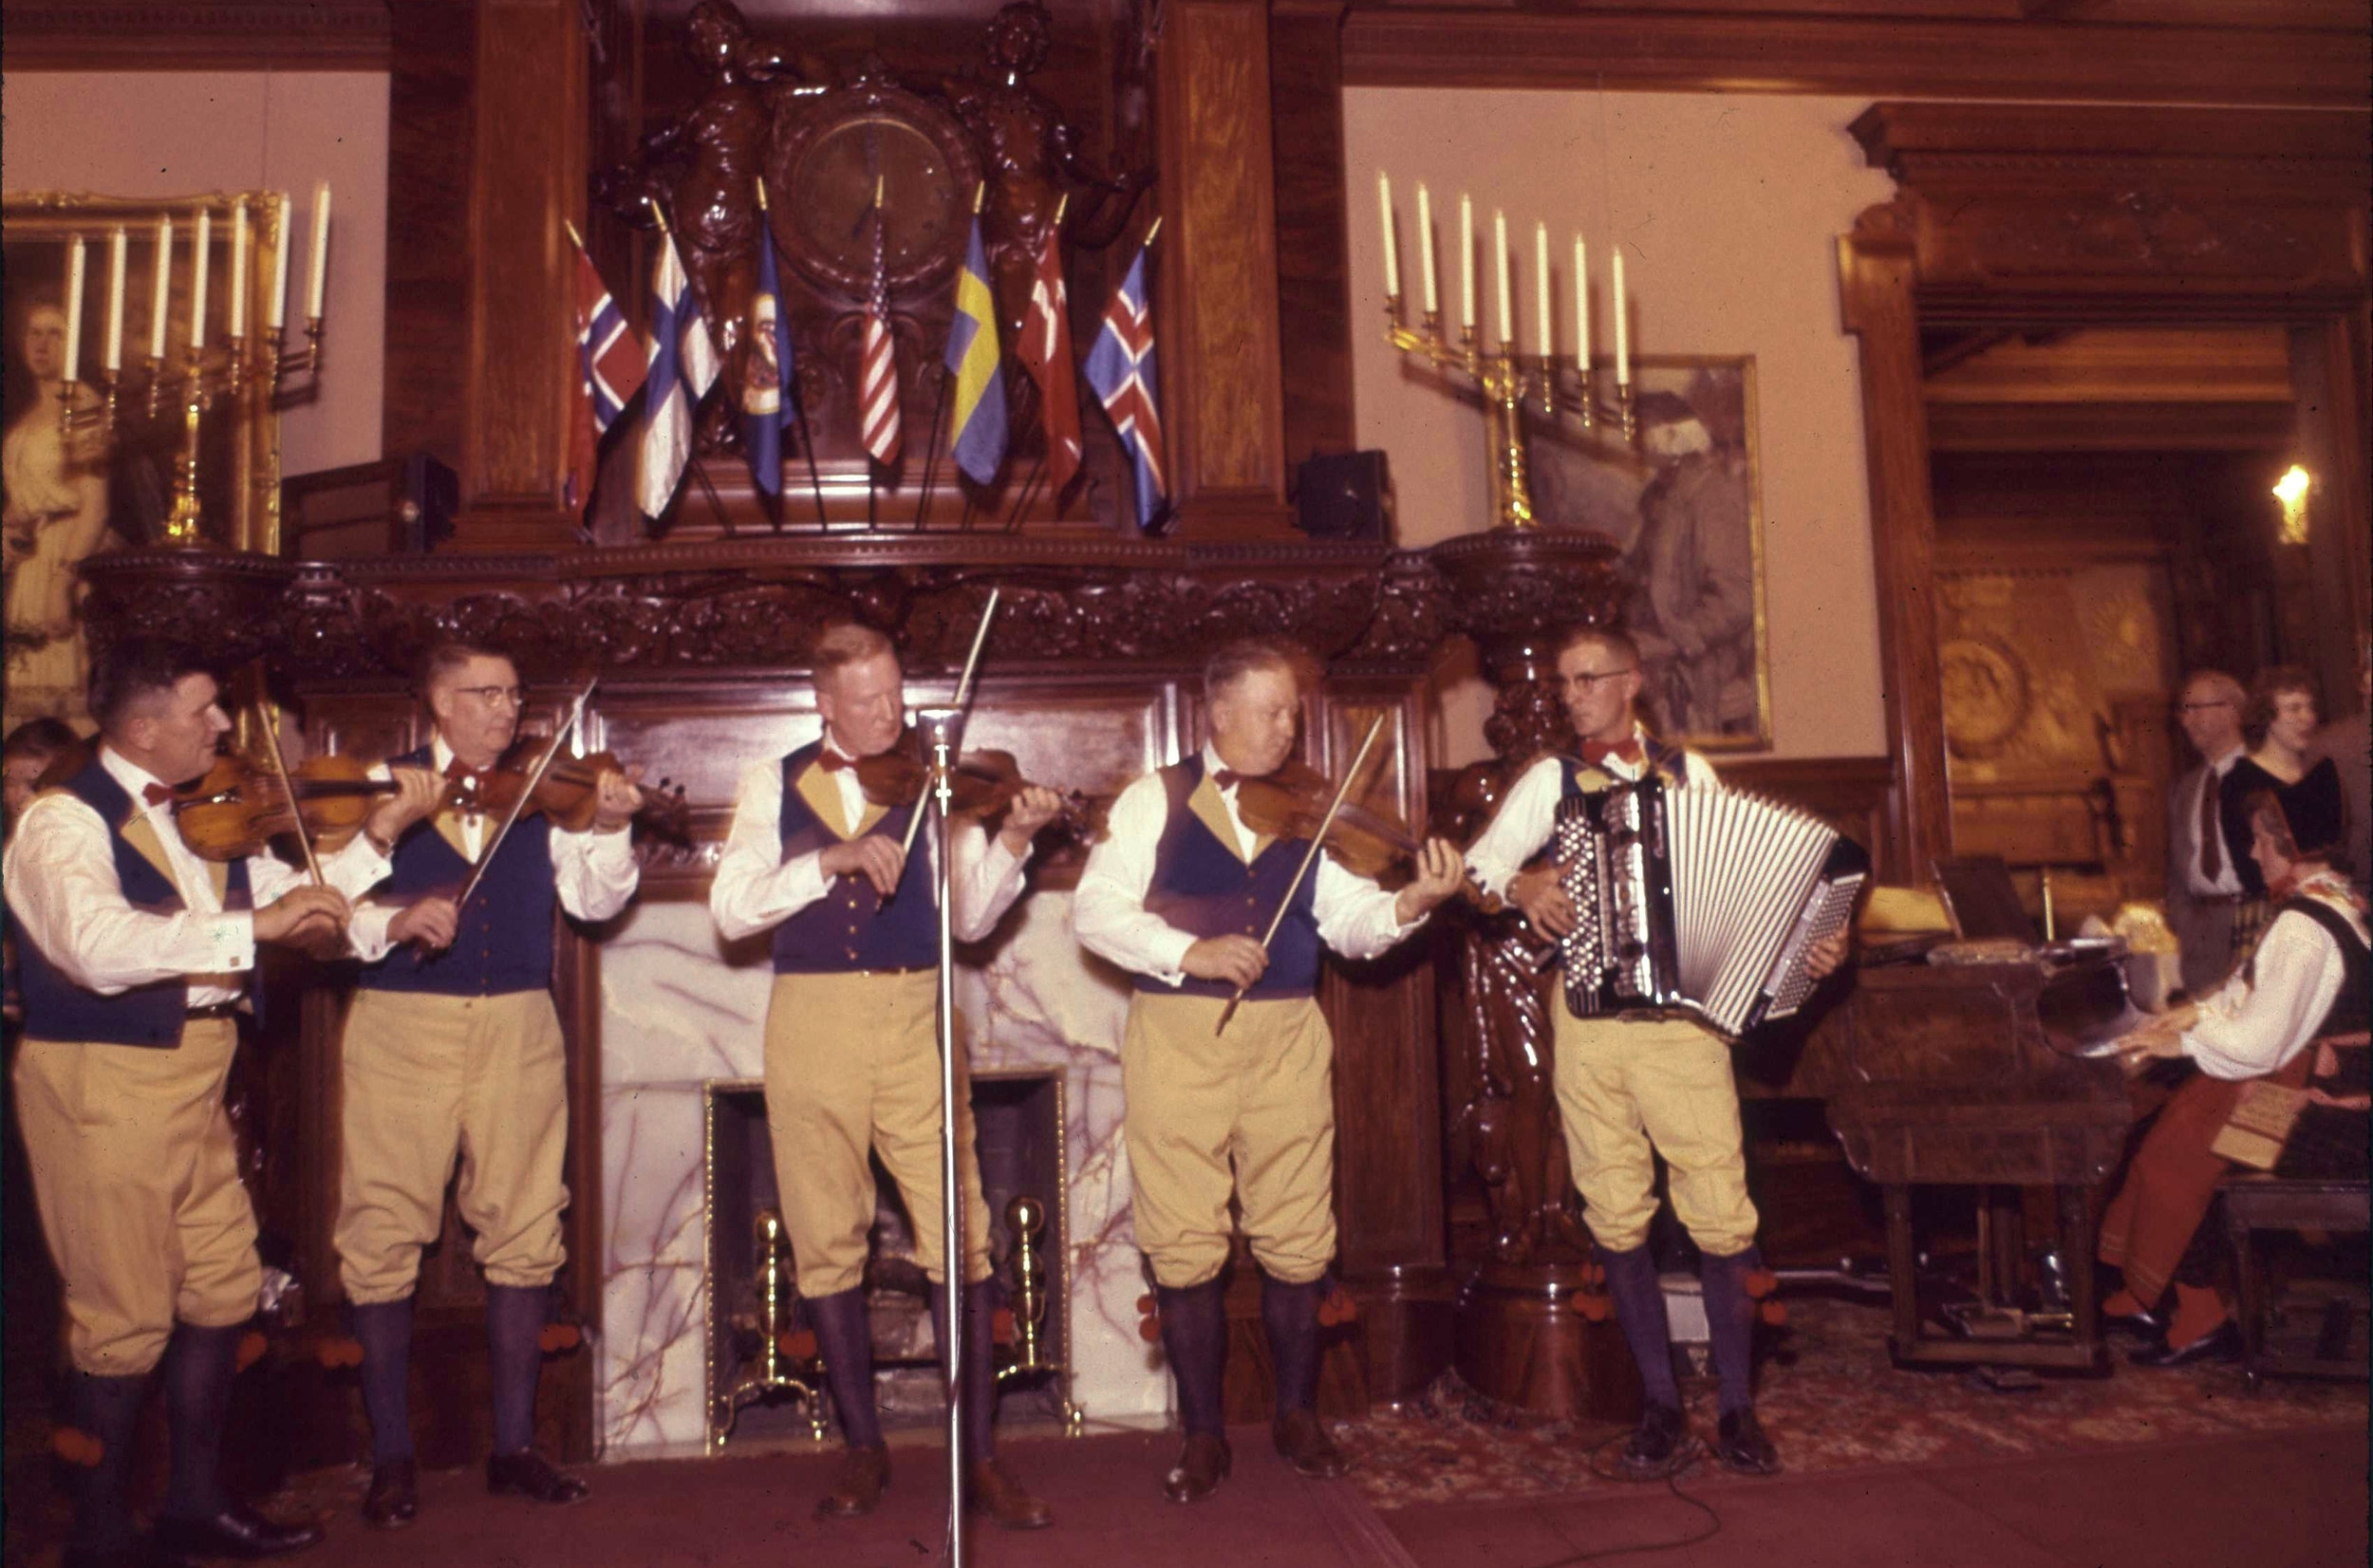 Edwin Johnson, Nall Jon Eriksson, Roy Lind, Gunnar Helberg, Gust Anderson, and Edith Lind playing at the American Swedish Institute circa 1960. Photo by Roy Svedvik.